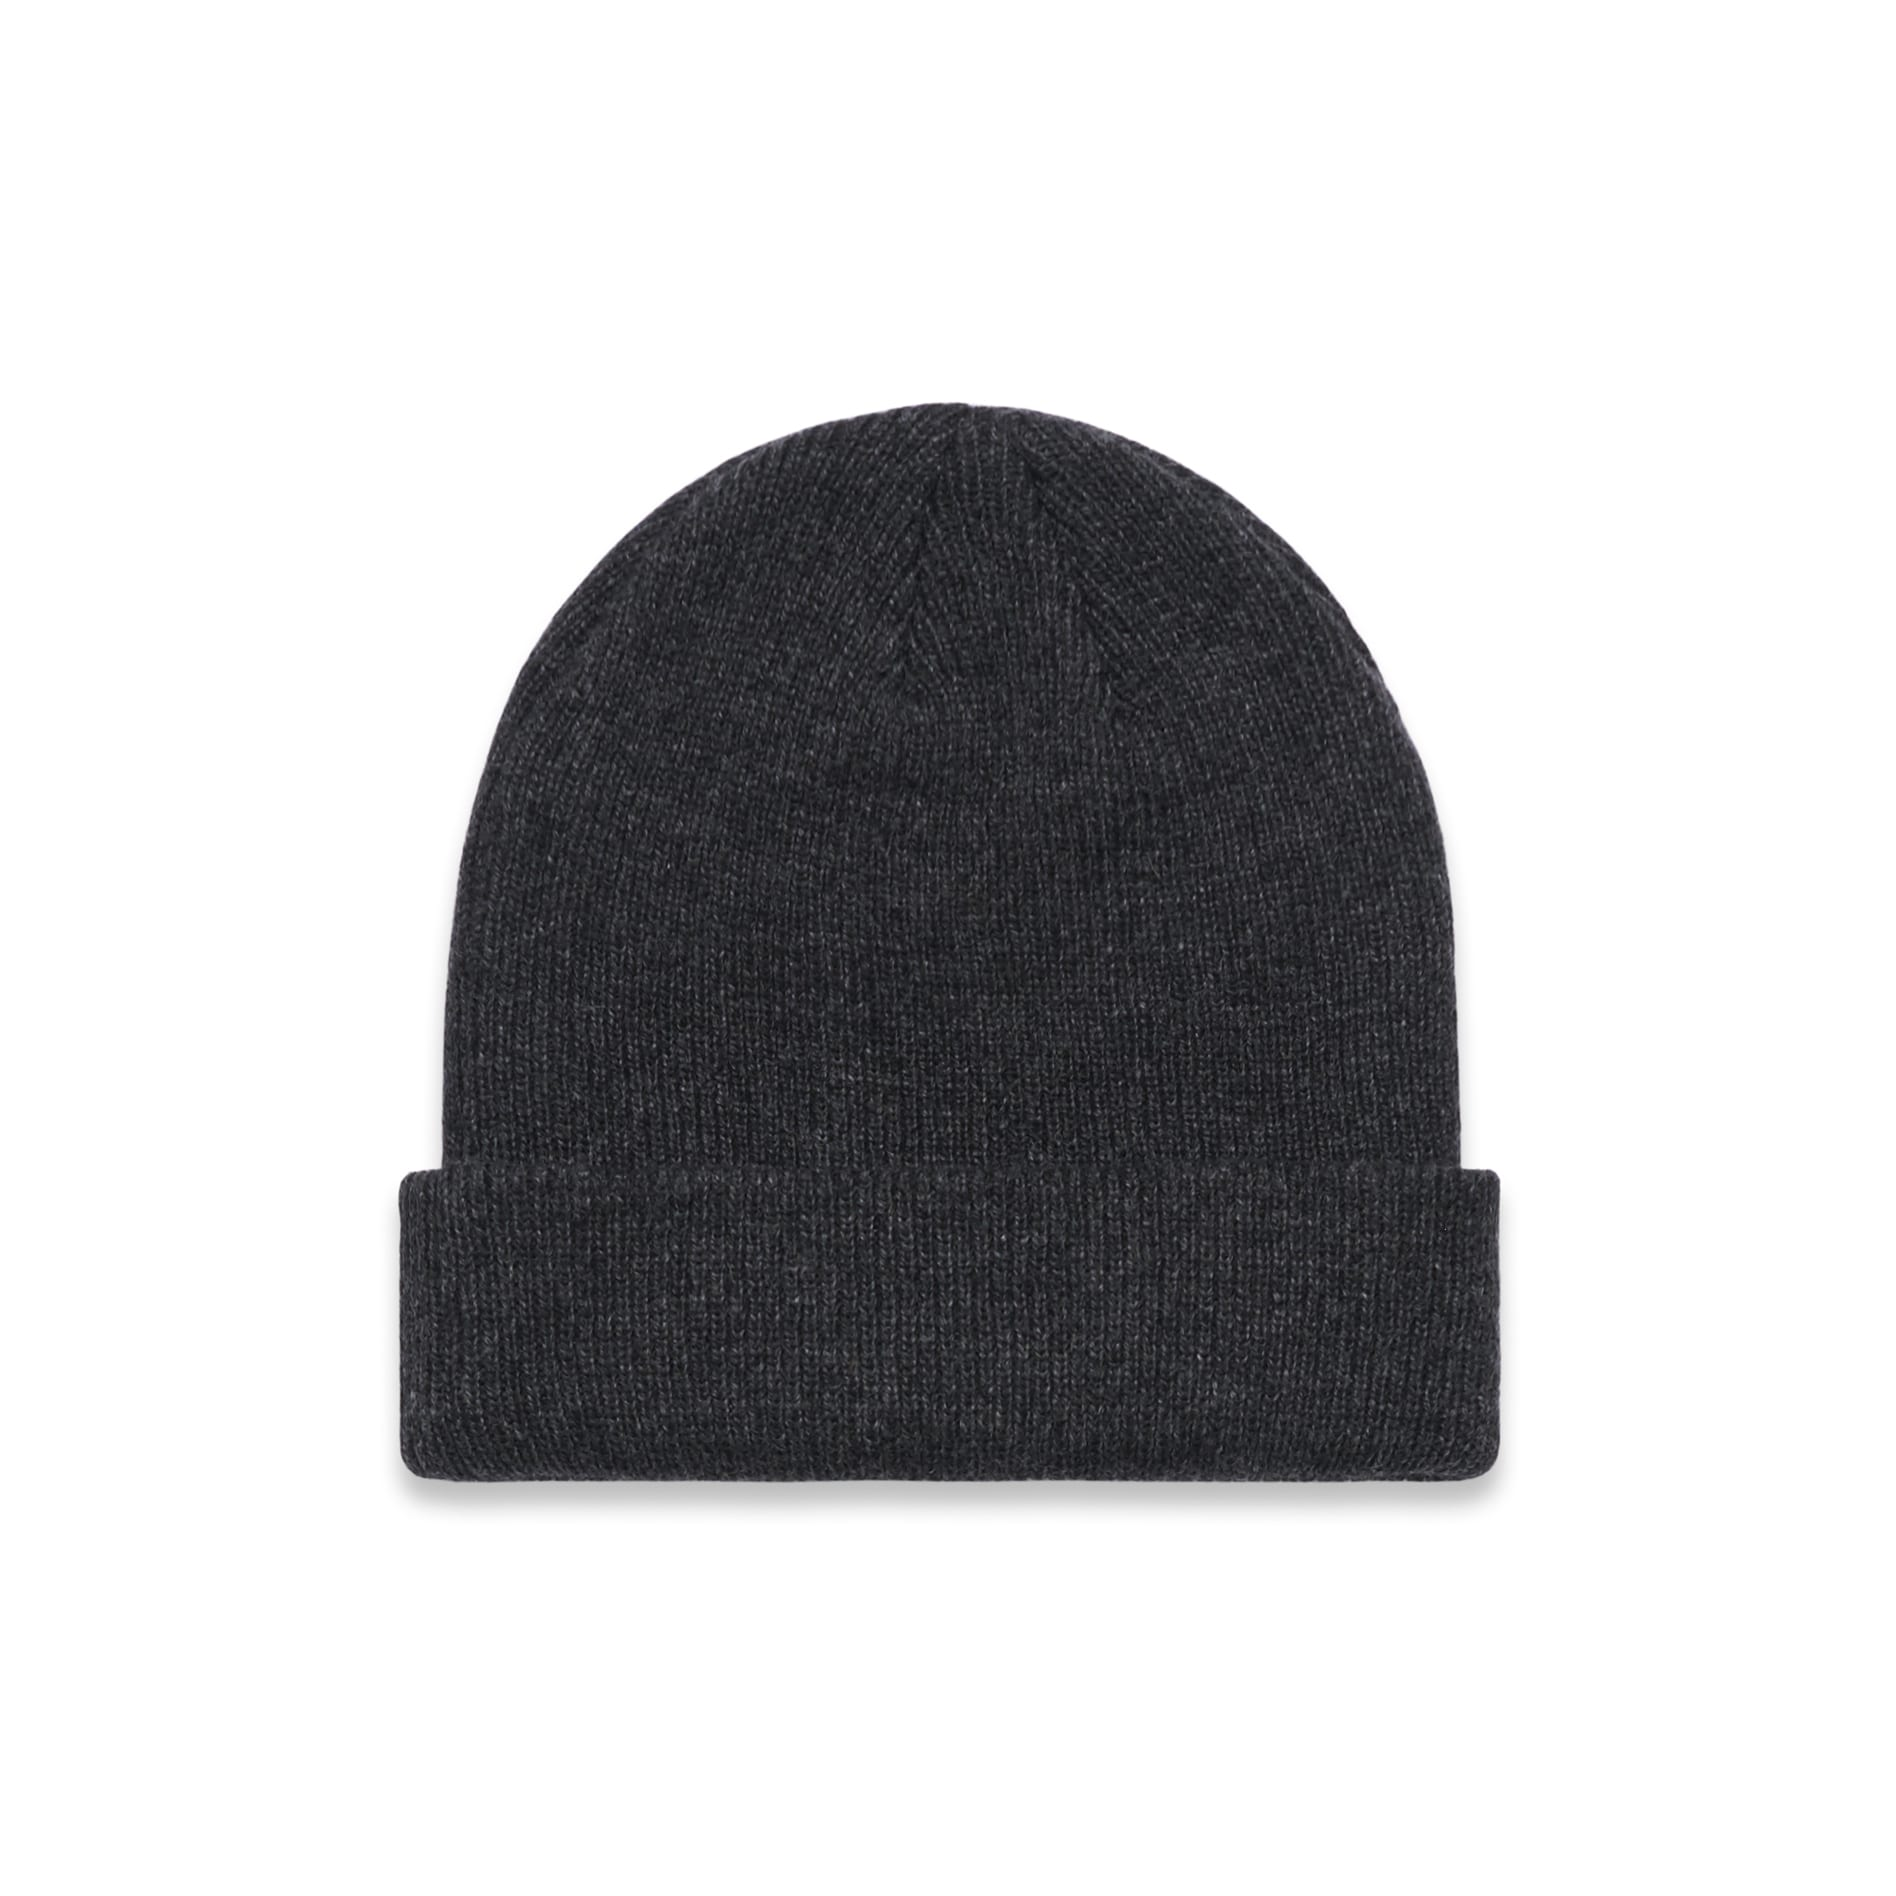 AS 1115 Knit Beanie